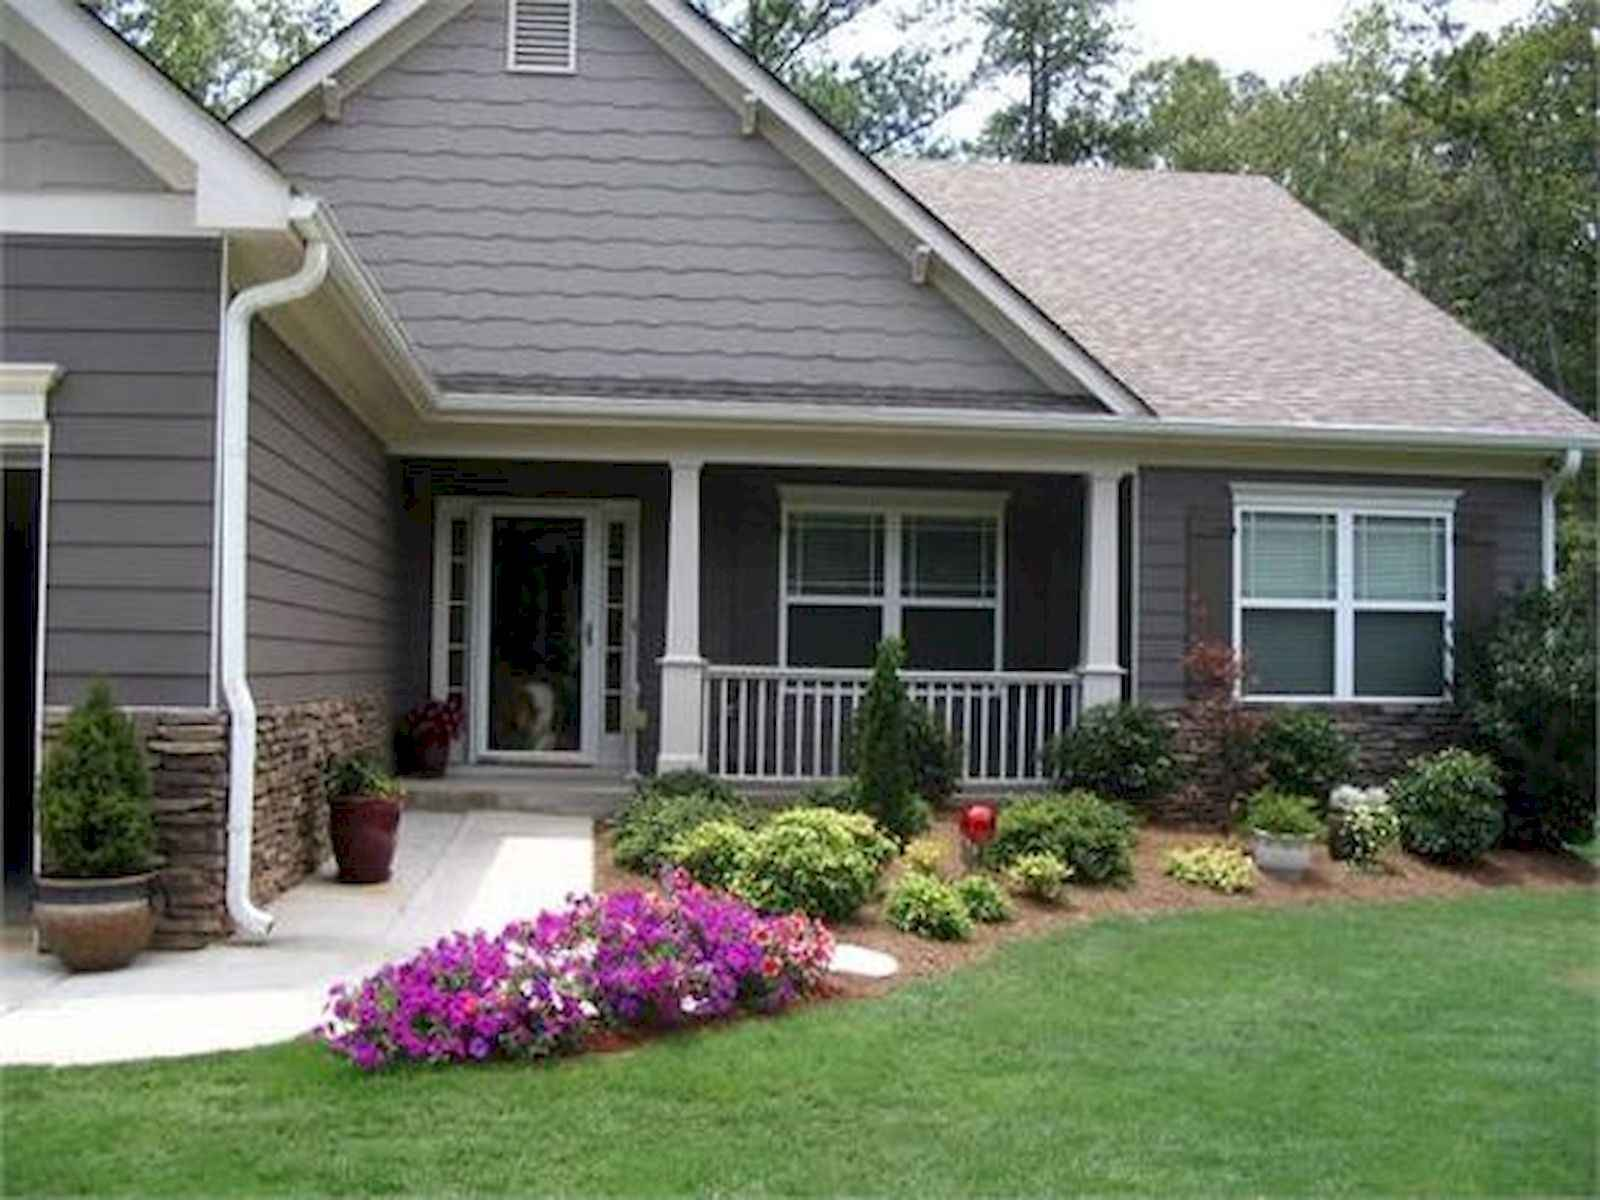 90 simple and beautiful front yard landscaping ideas on a budget  56